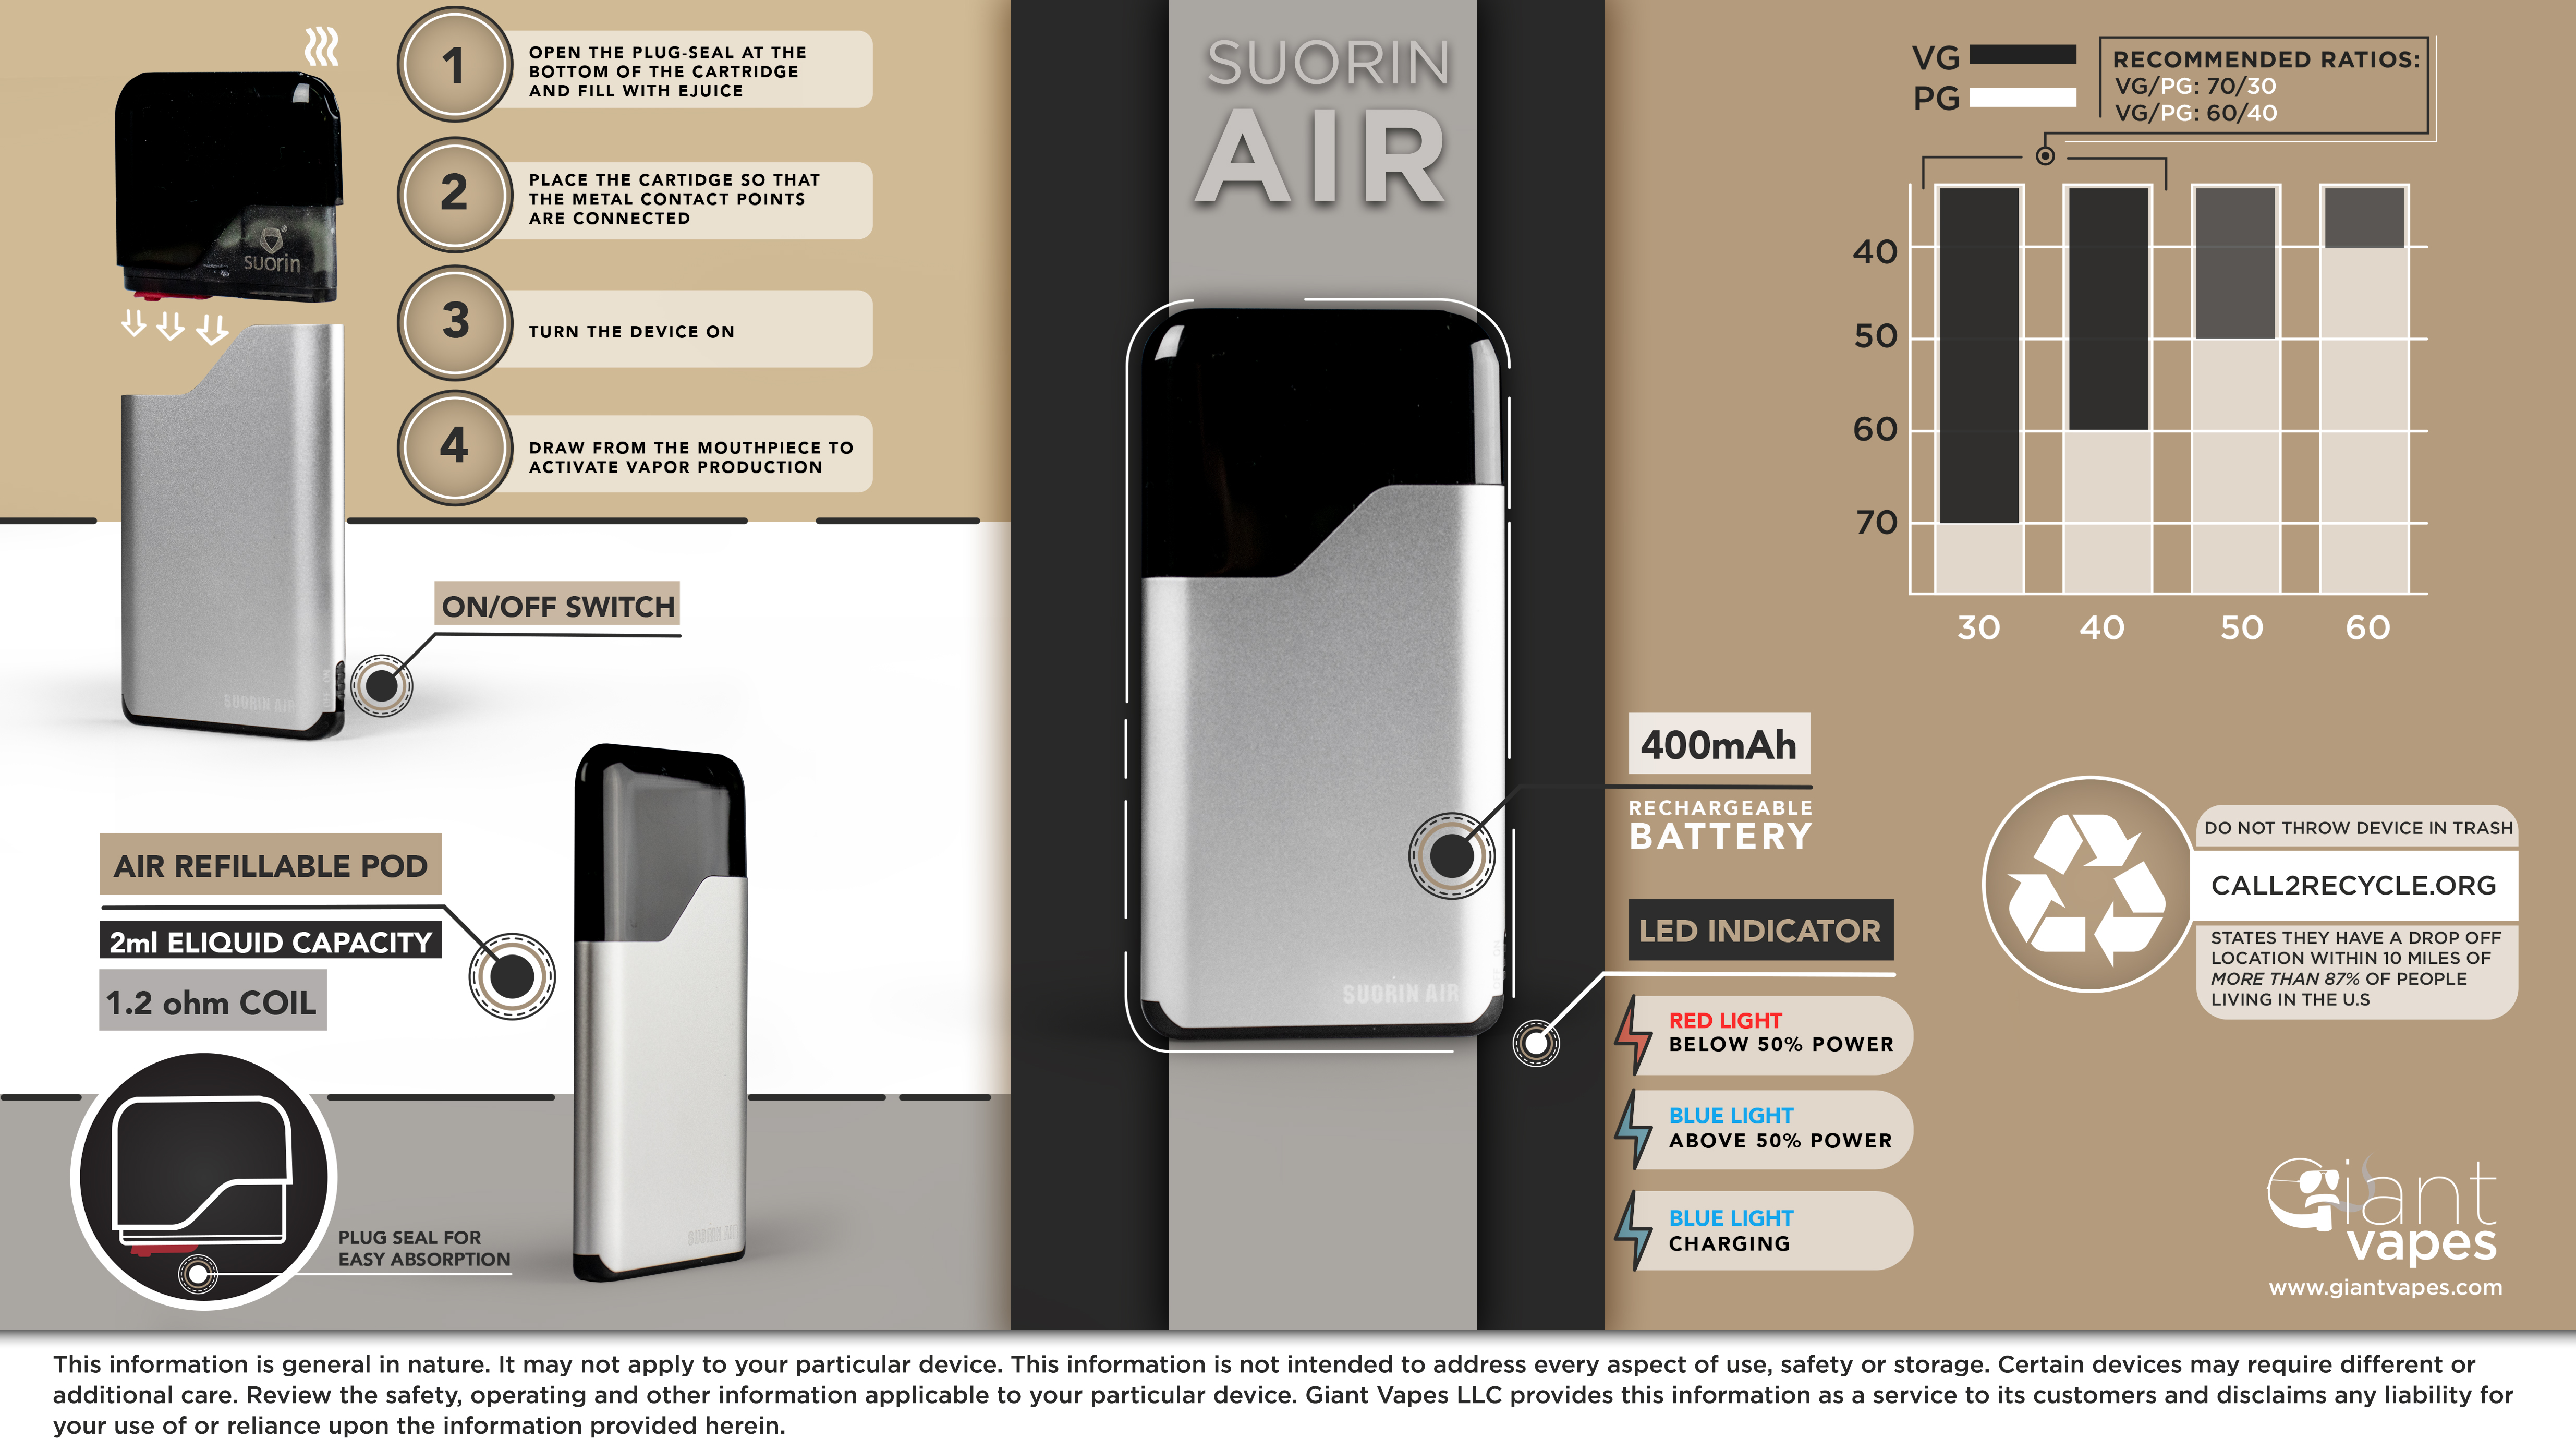 Suorin Air Infographic